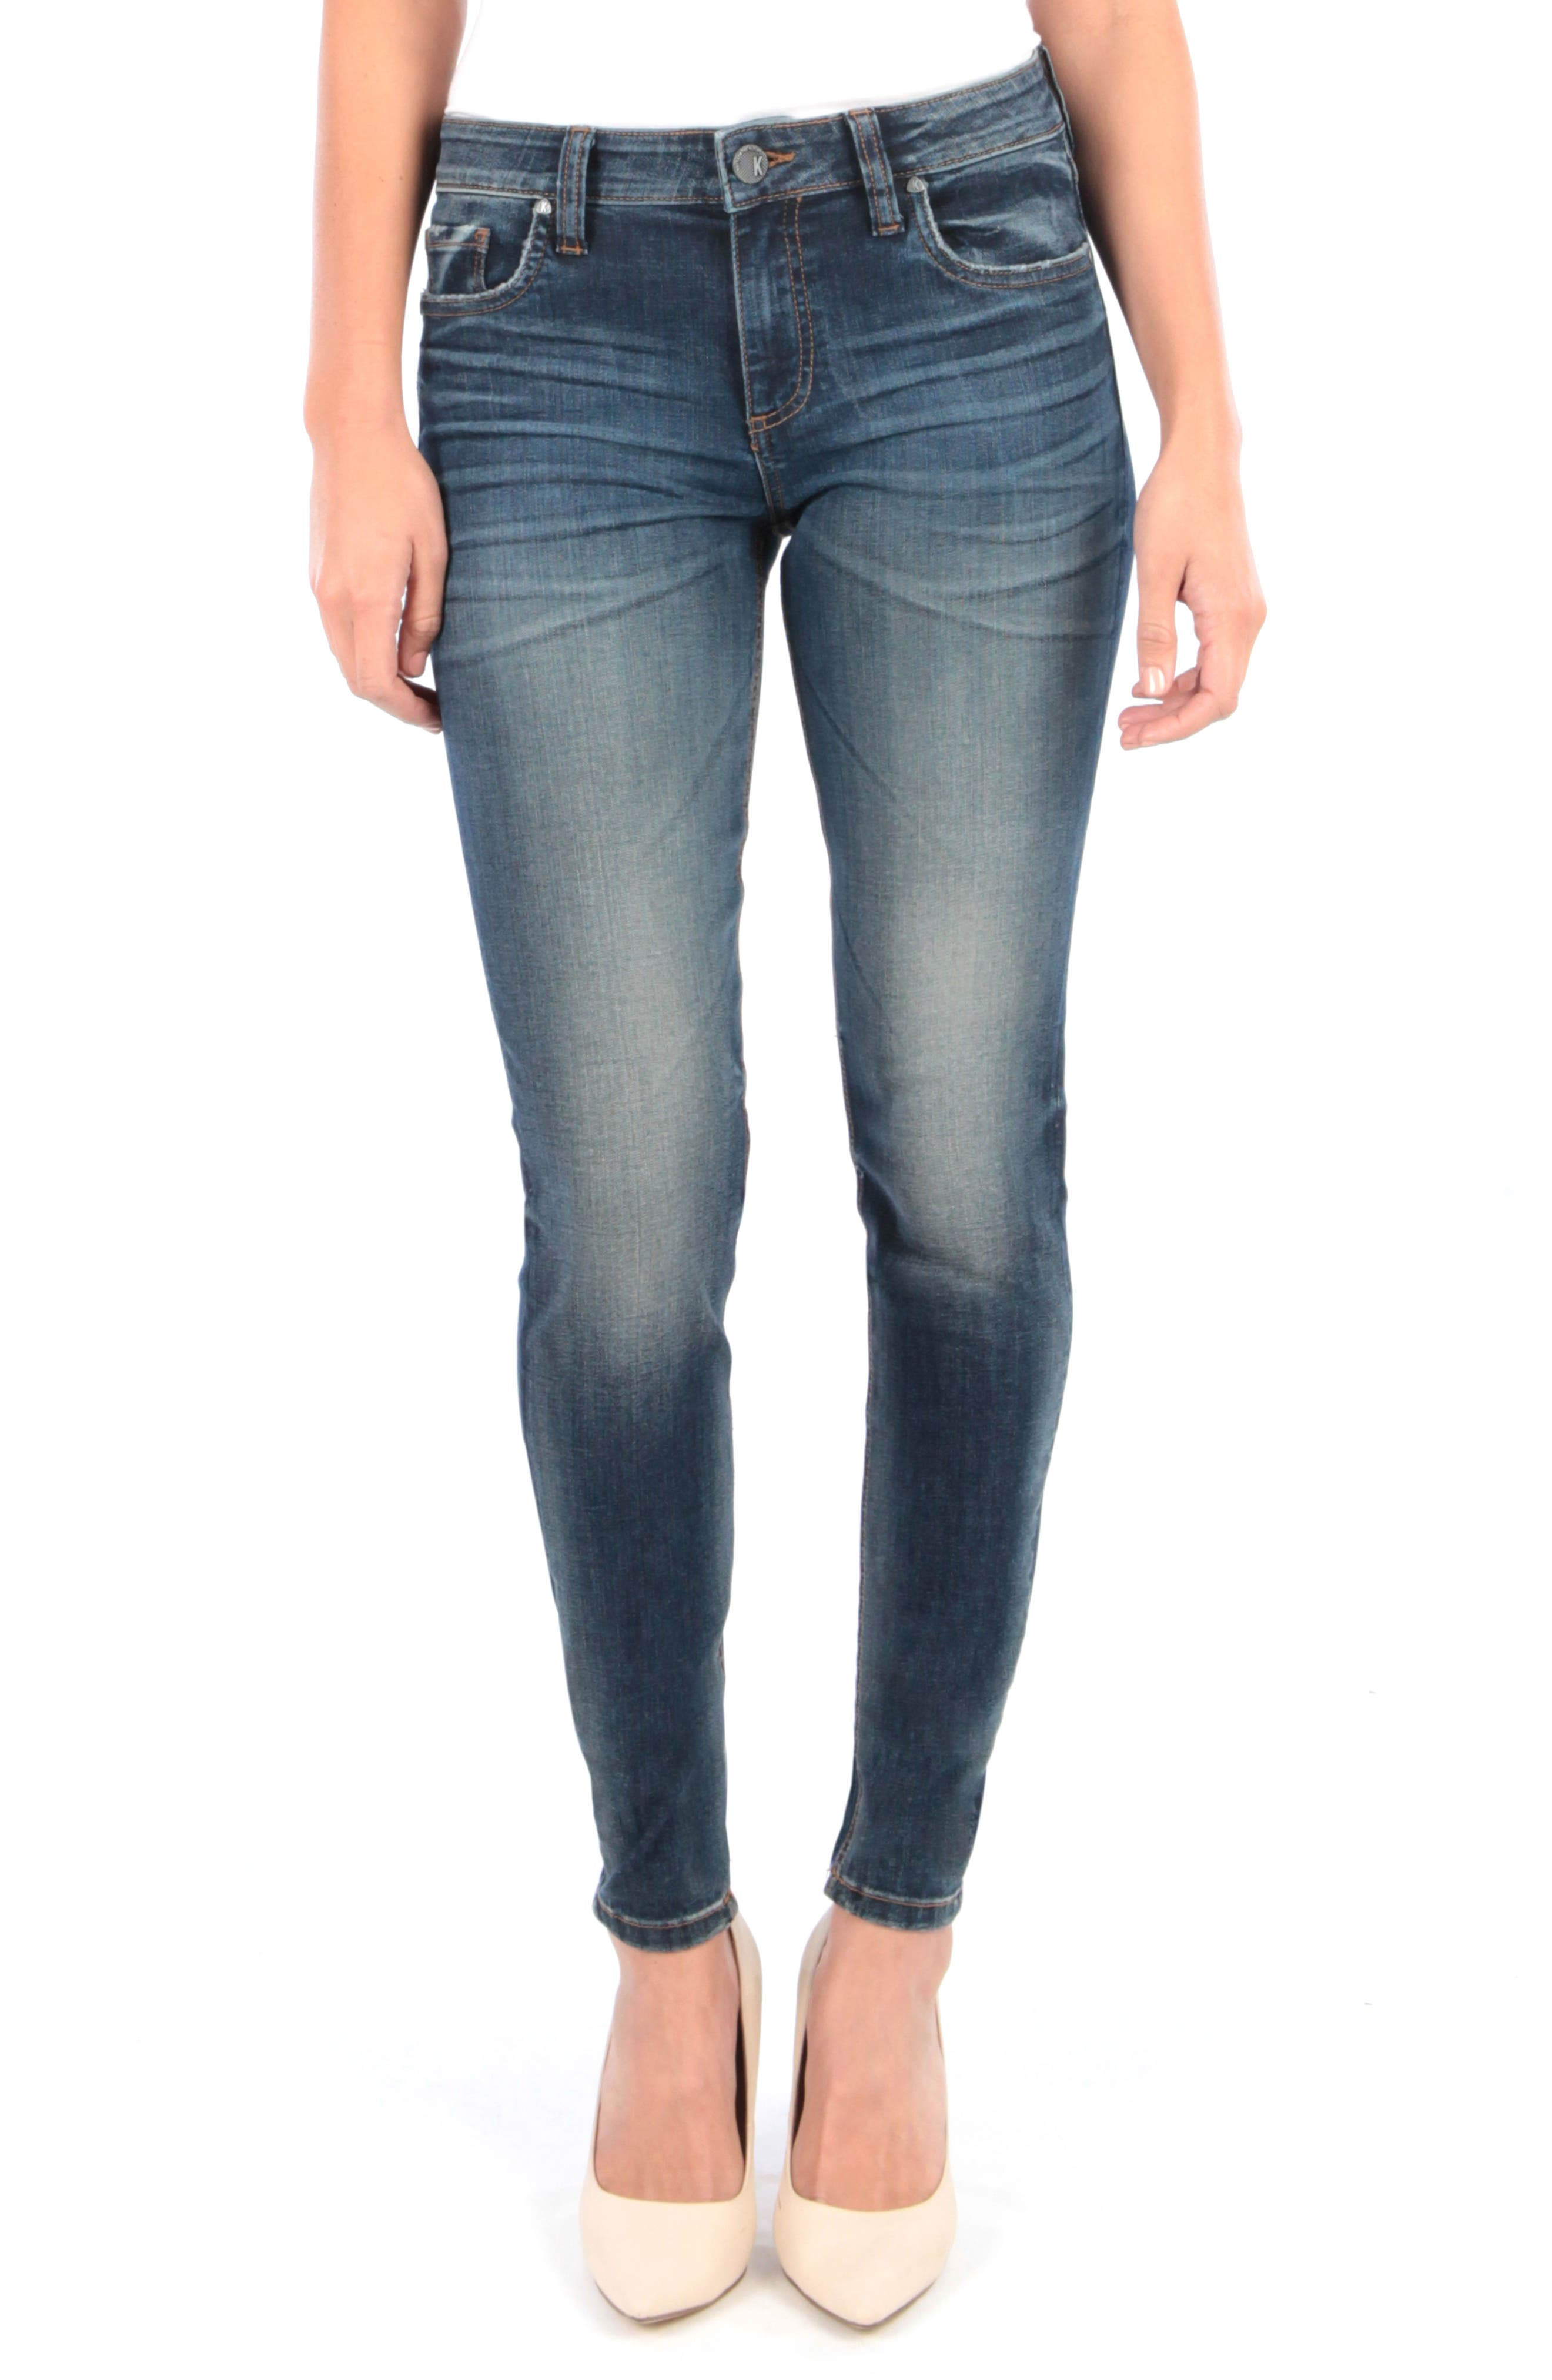 Kut From The Kloth Donna High Waist Skinny Jeans, Blue